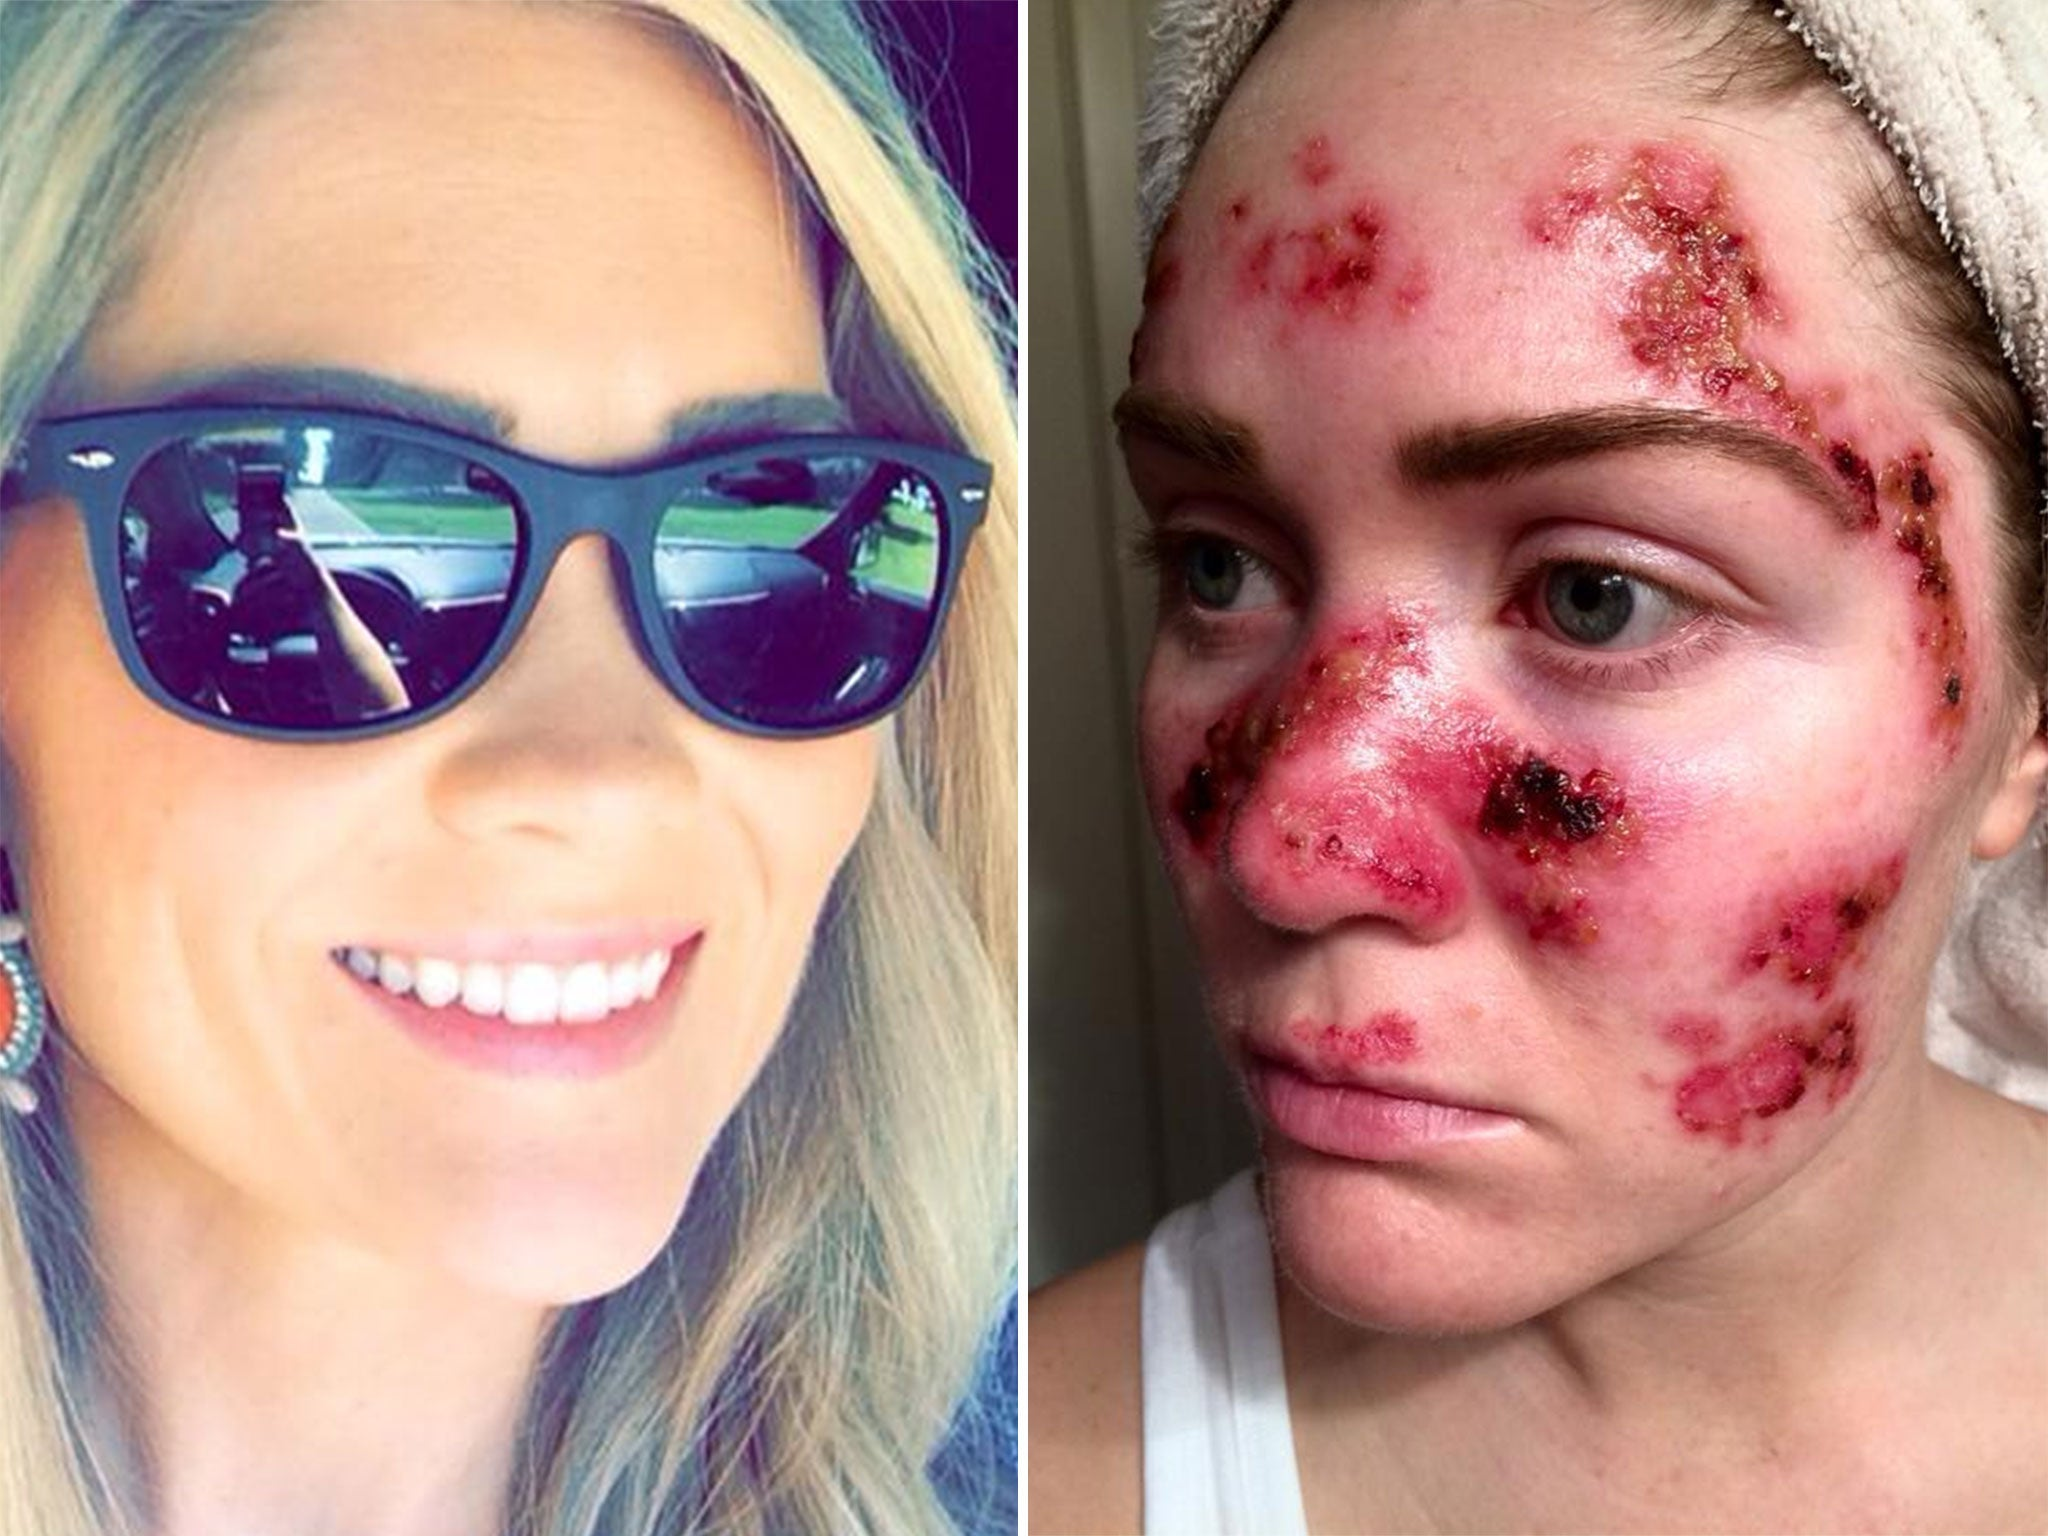 Skin Cancer Selfie Mother Tawny Willoughby Warns Against Dangers Of Sunbeds On Facebook The Independent The Independent